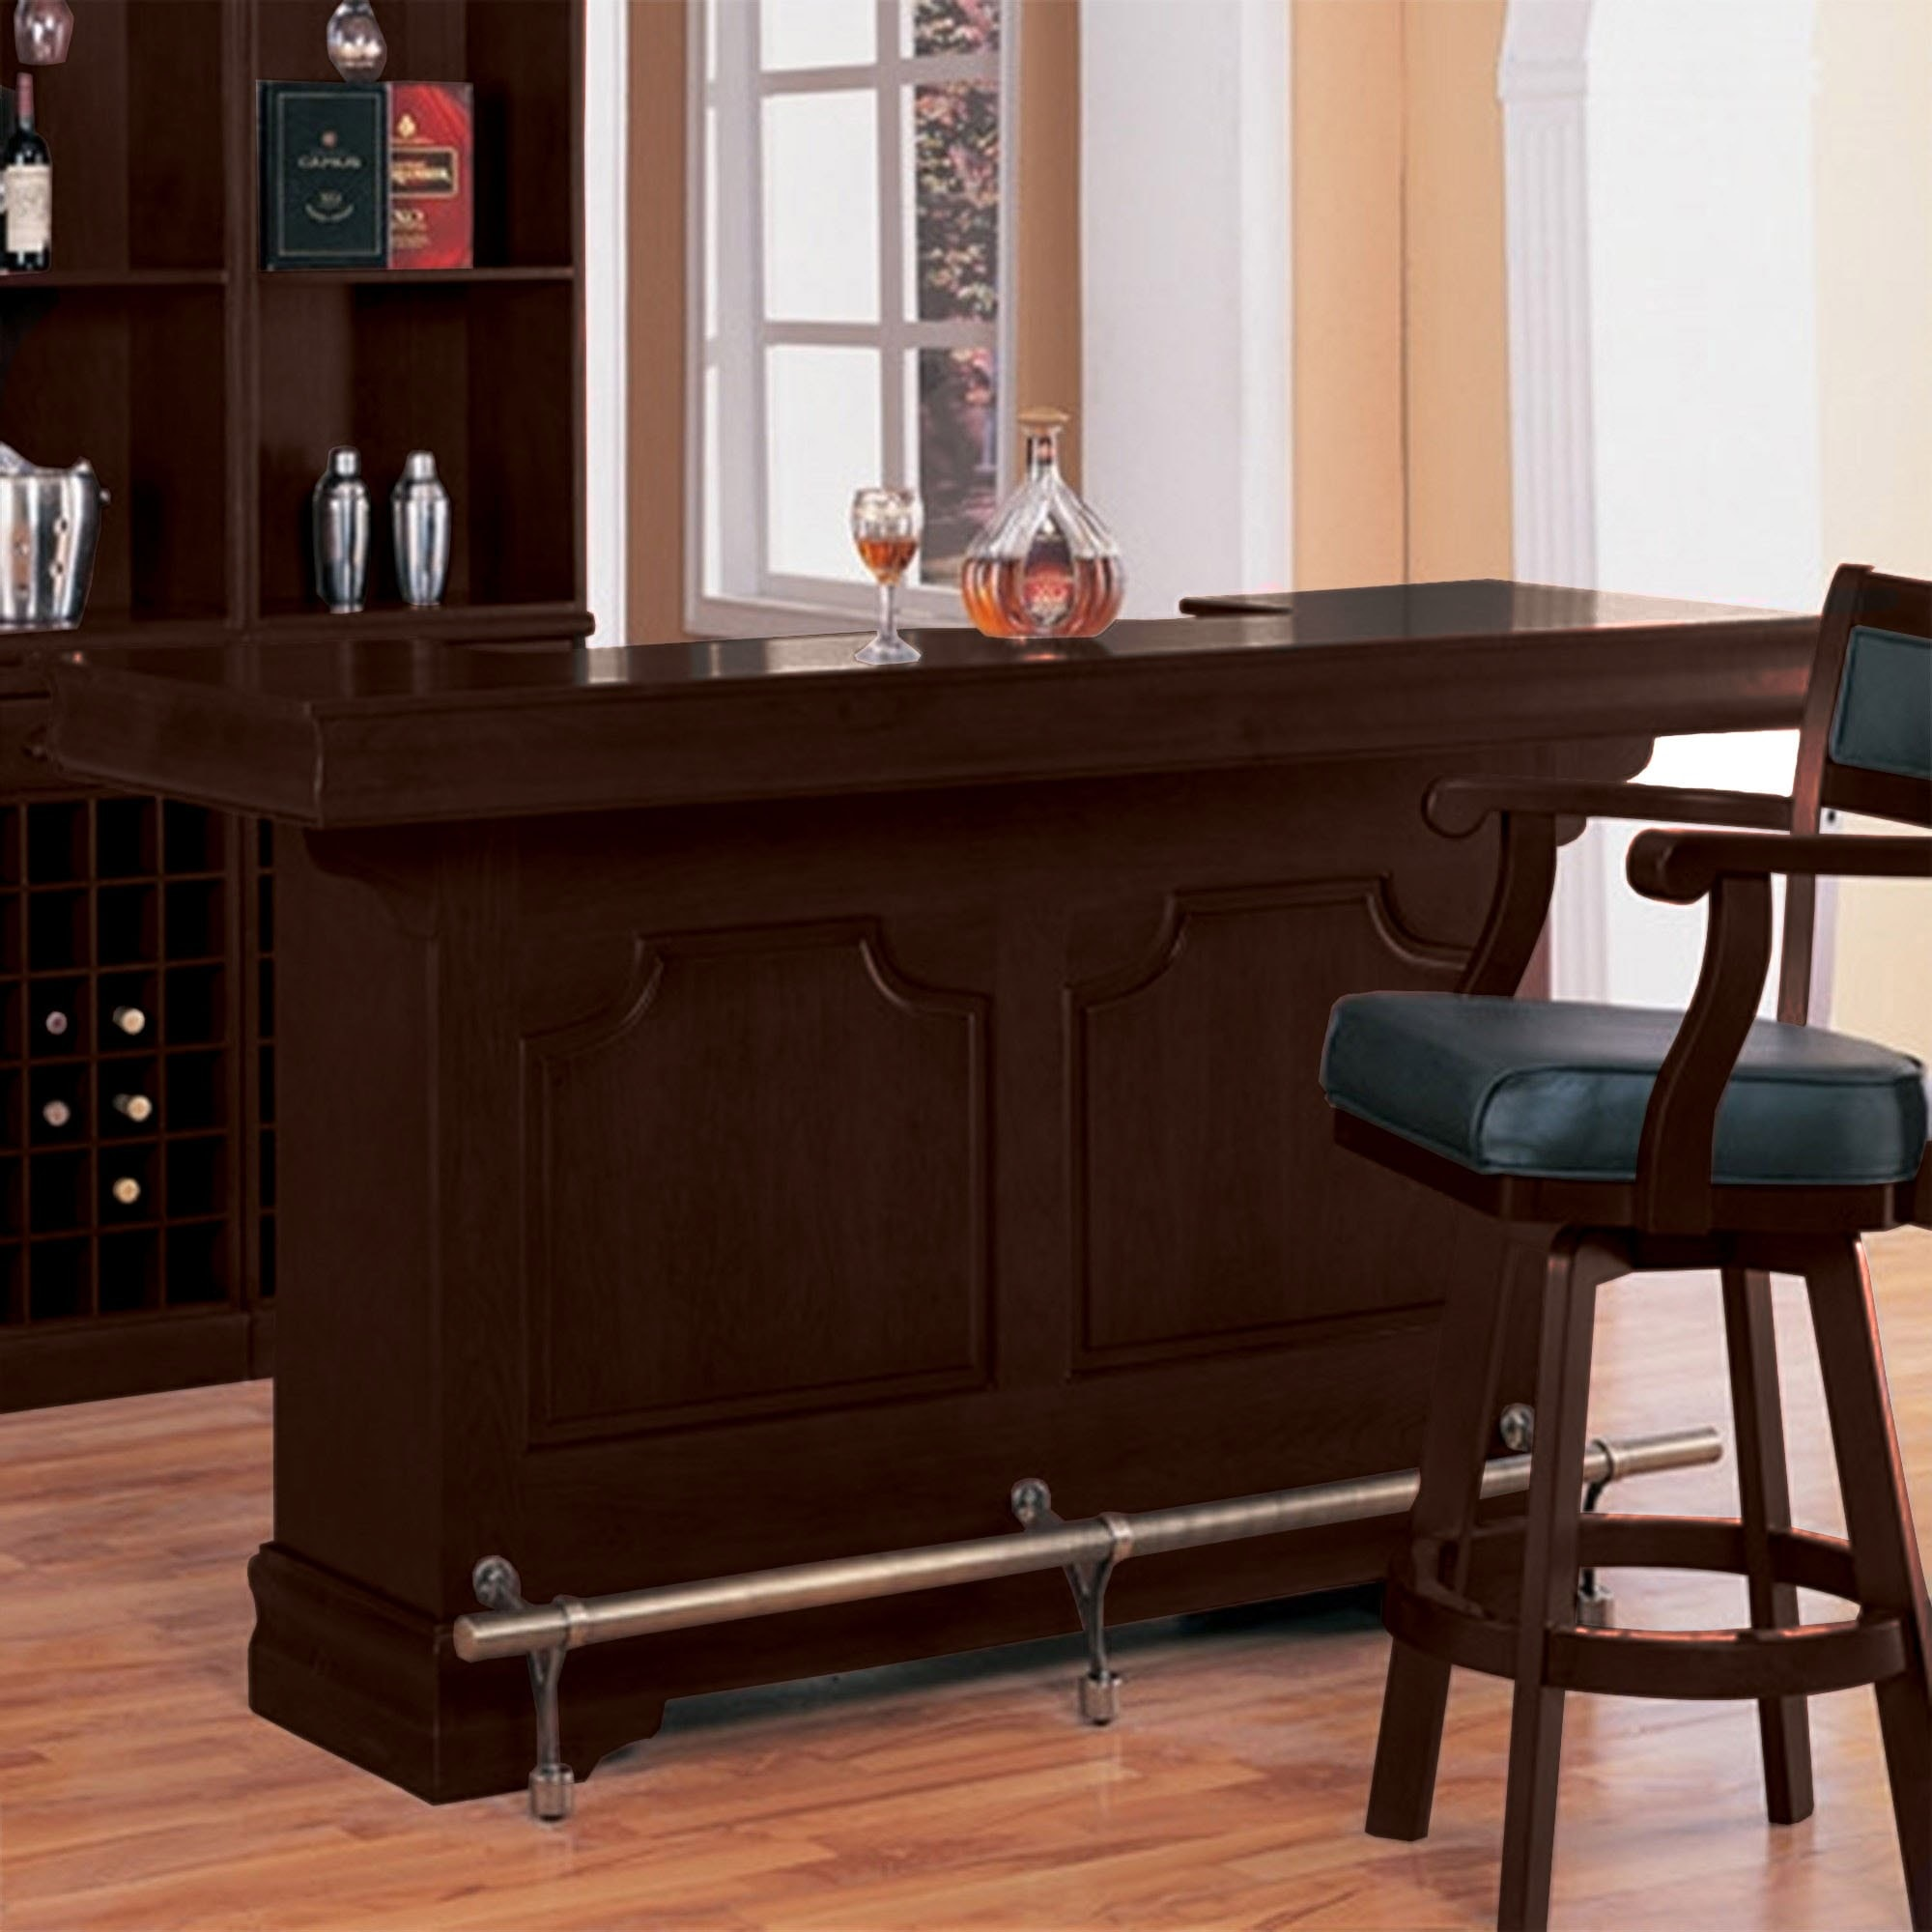 Mahogany Bar Wooden Bars Home Bars Available Online Now